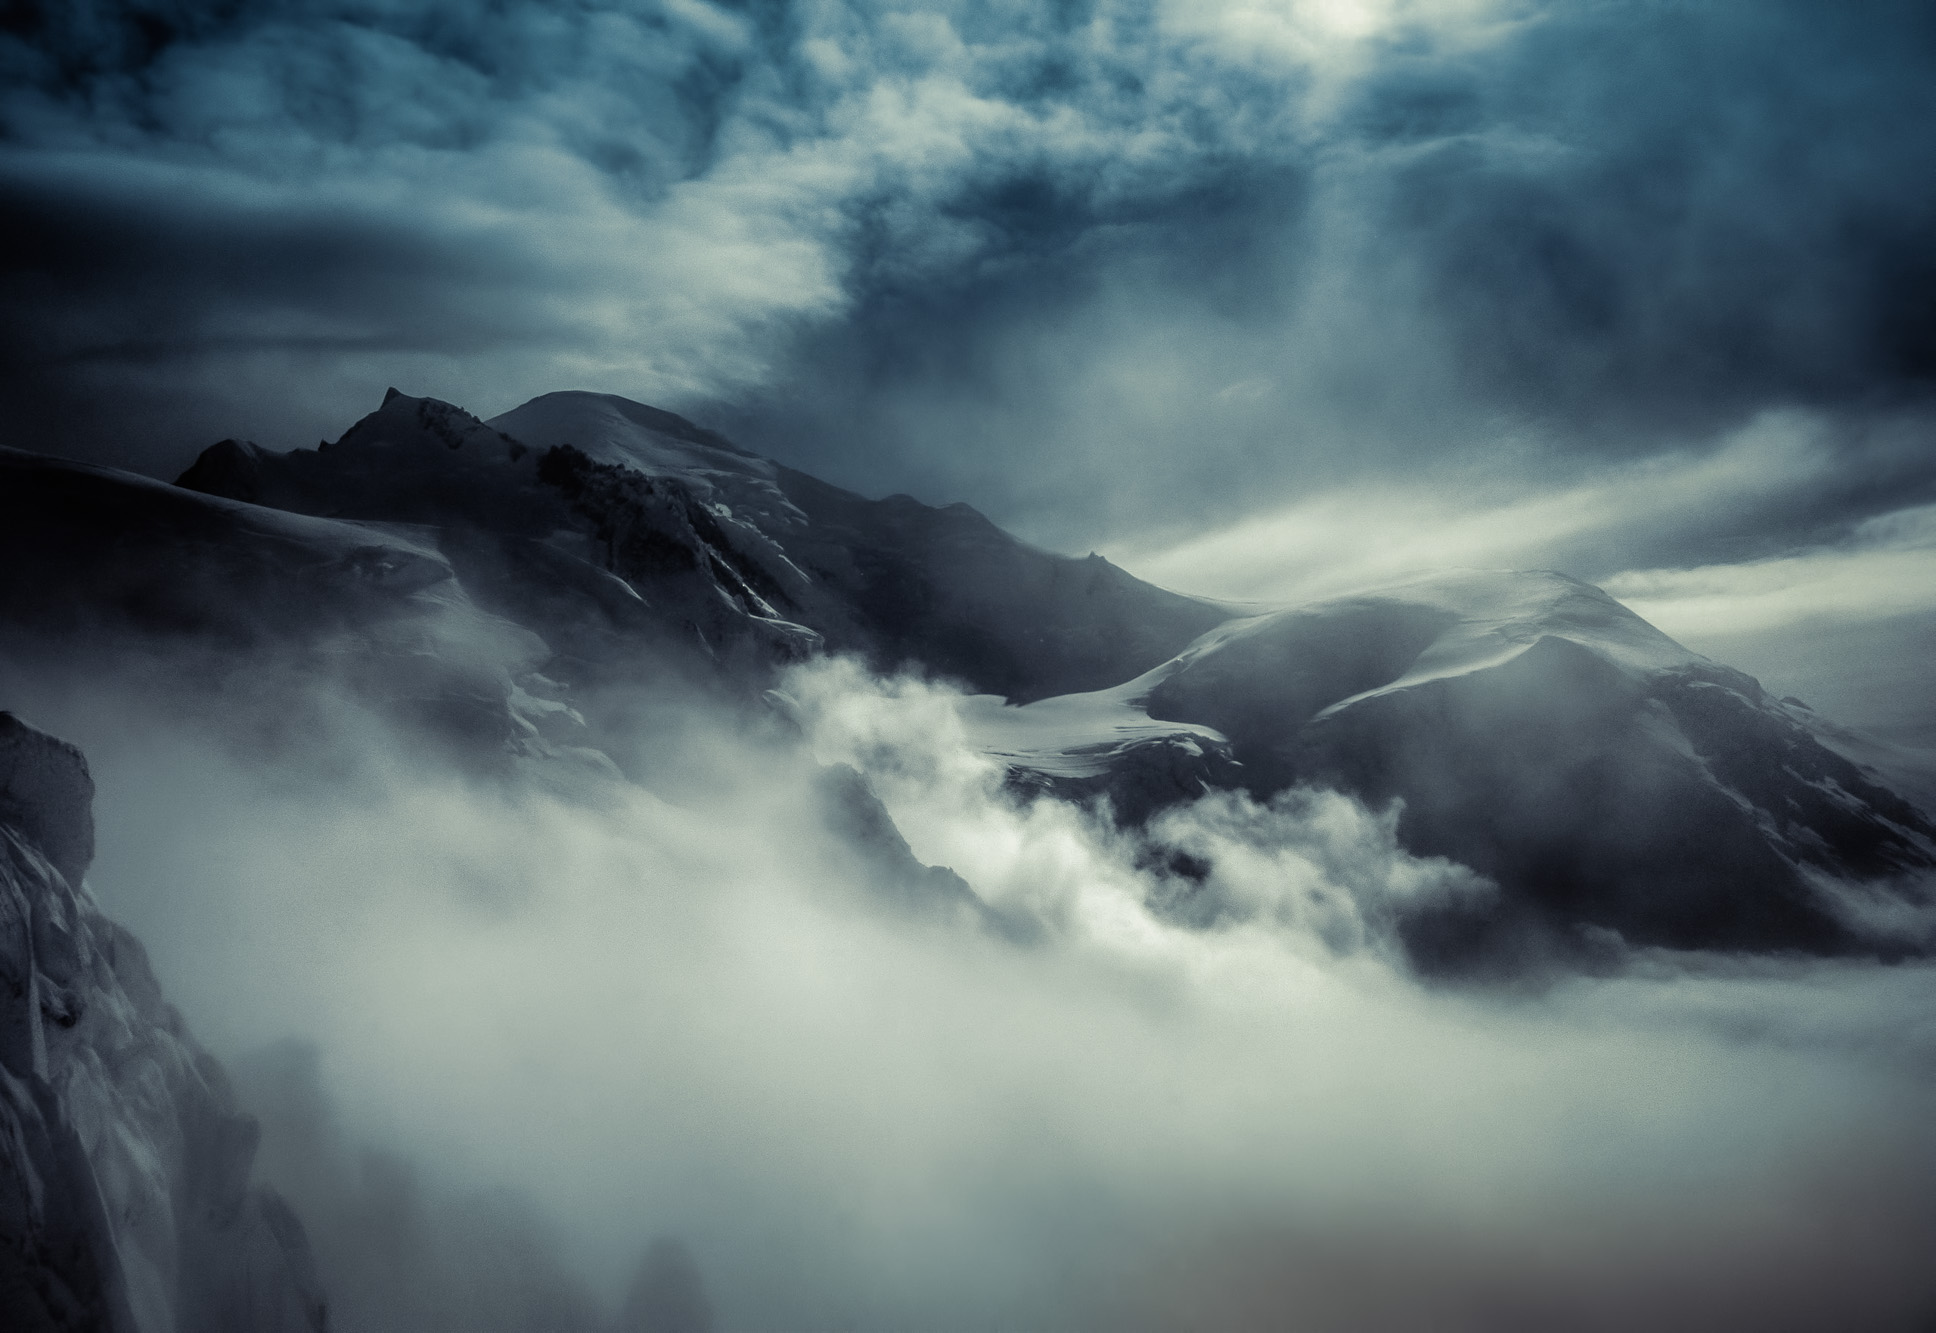 antonyz long exposure landscape photograph of mountains in the french also lit by moonlight